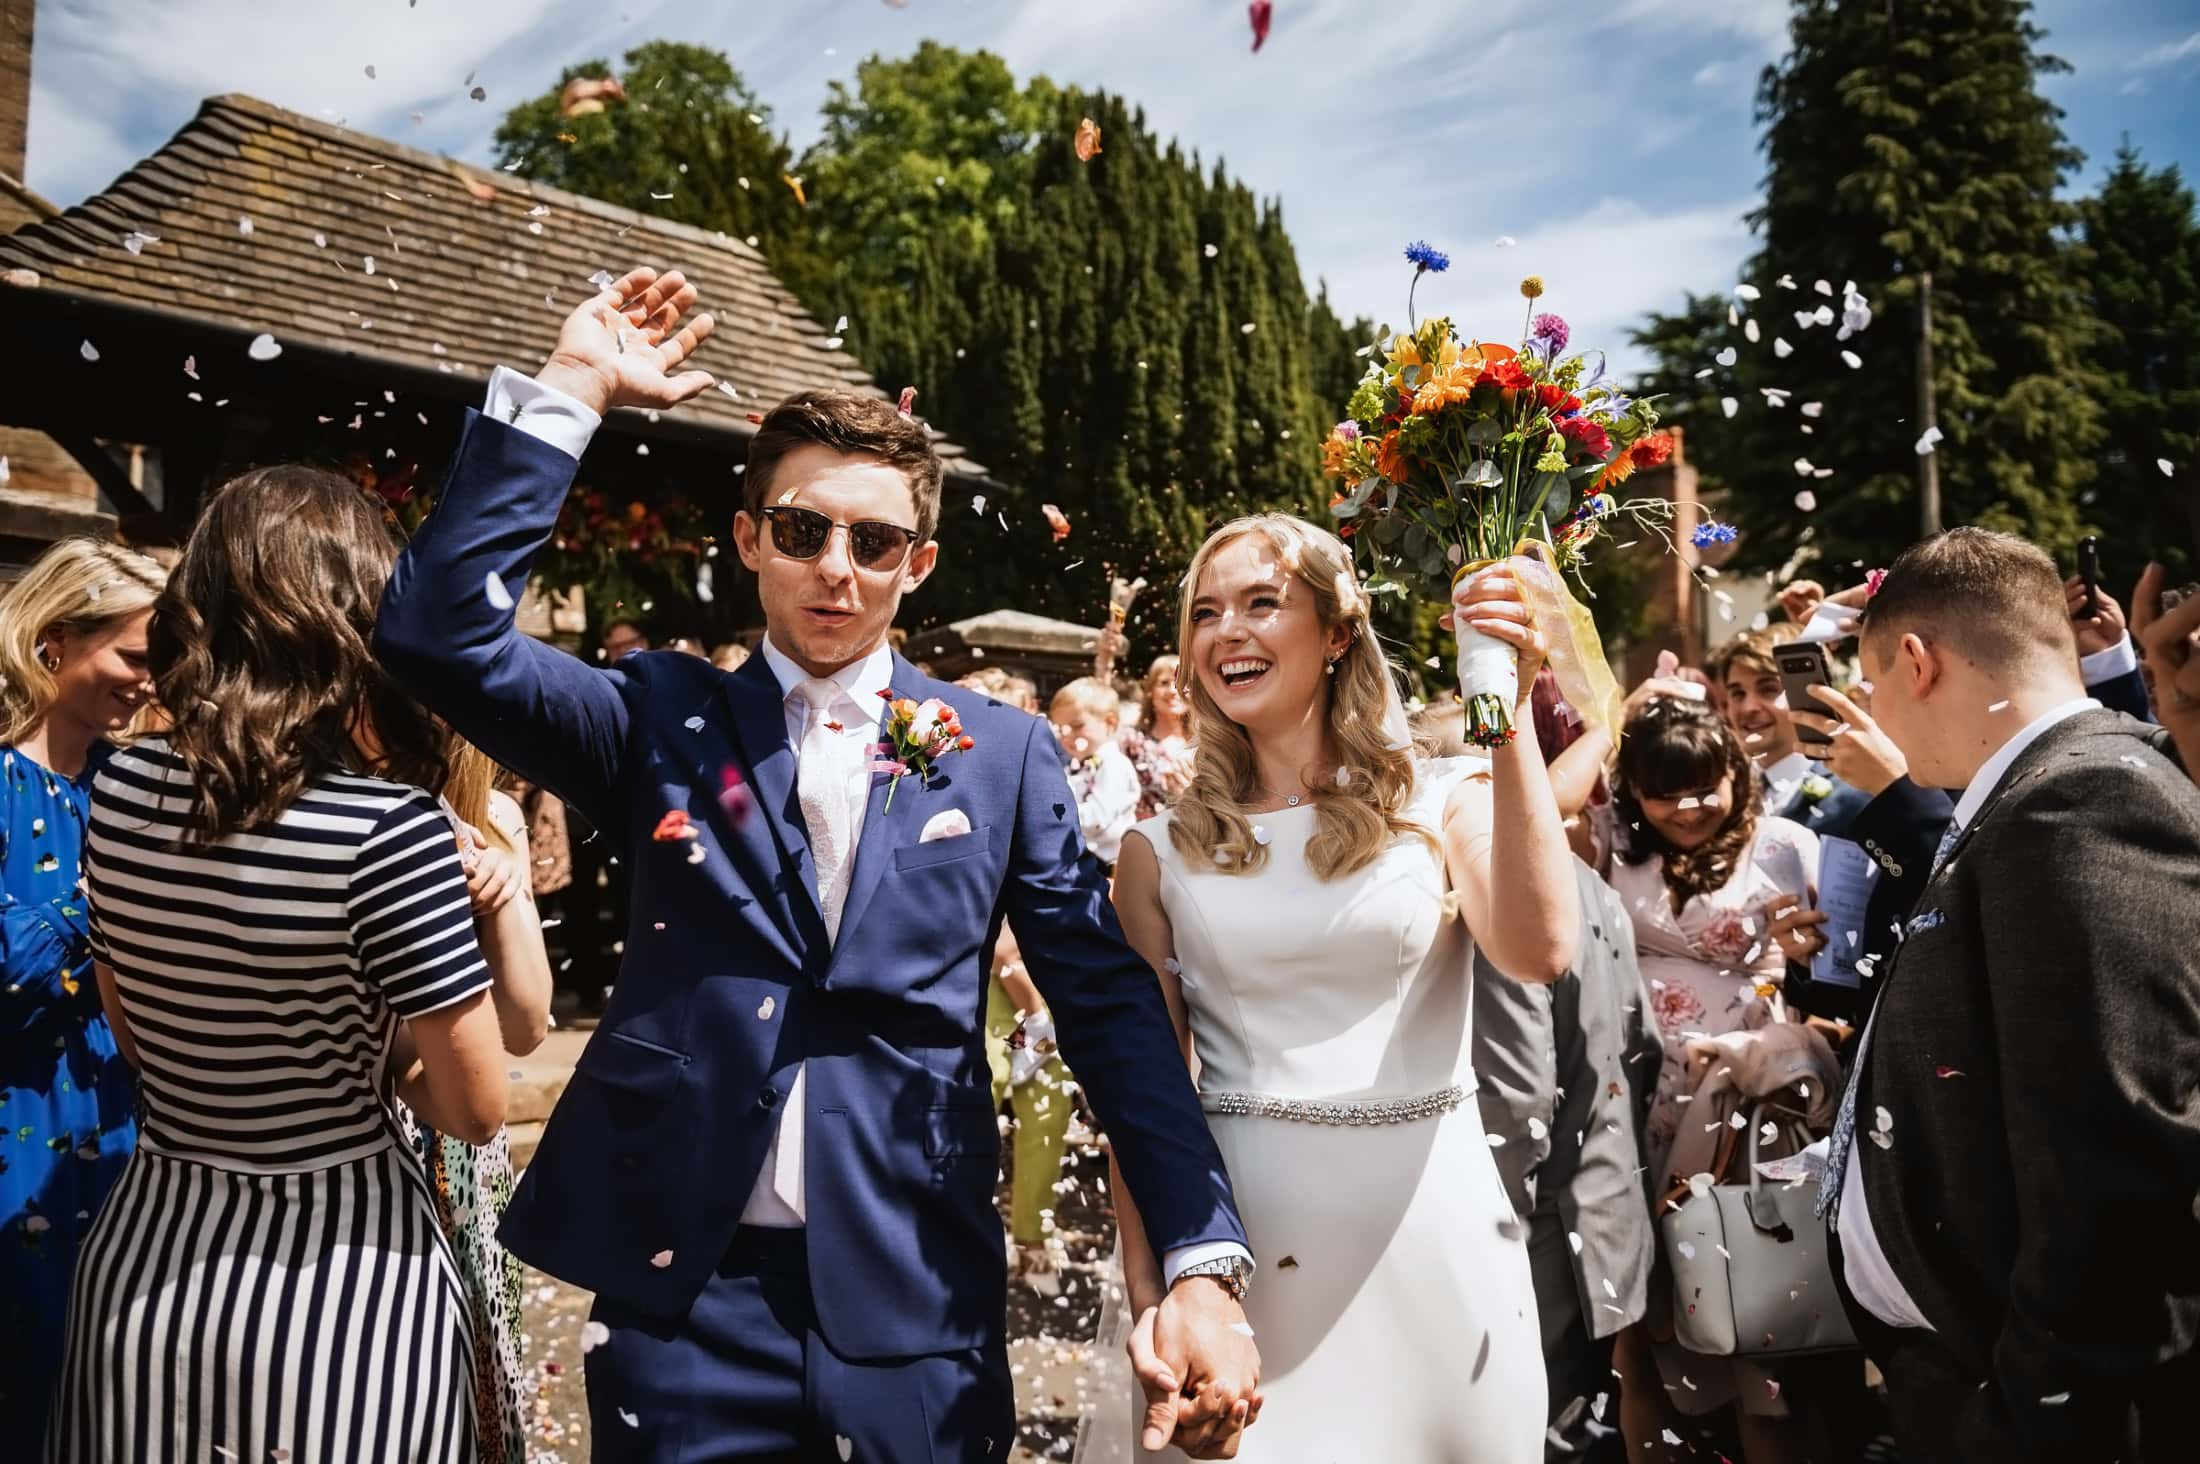 Bride and groom laughing as they walk through confetti after church ceremony